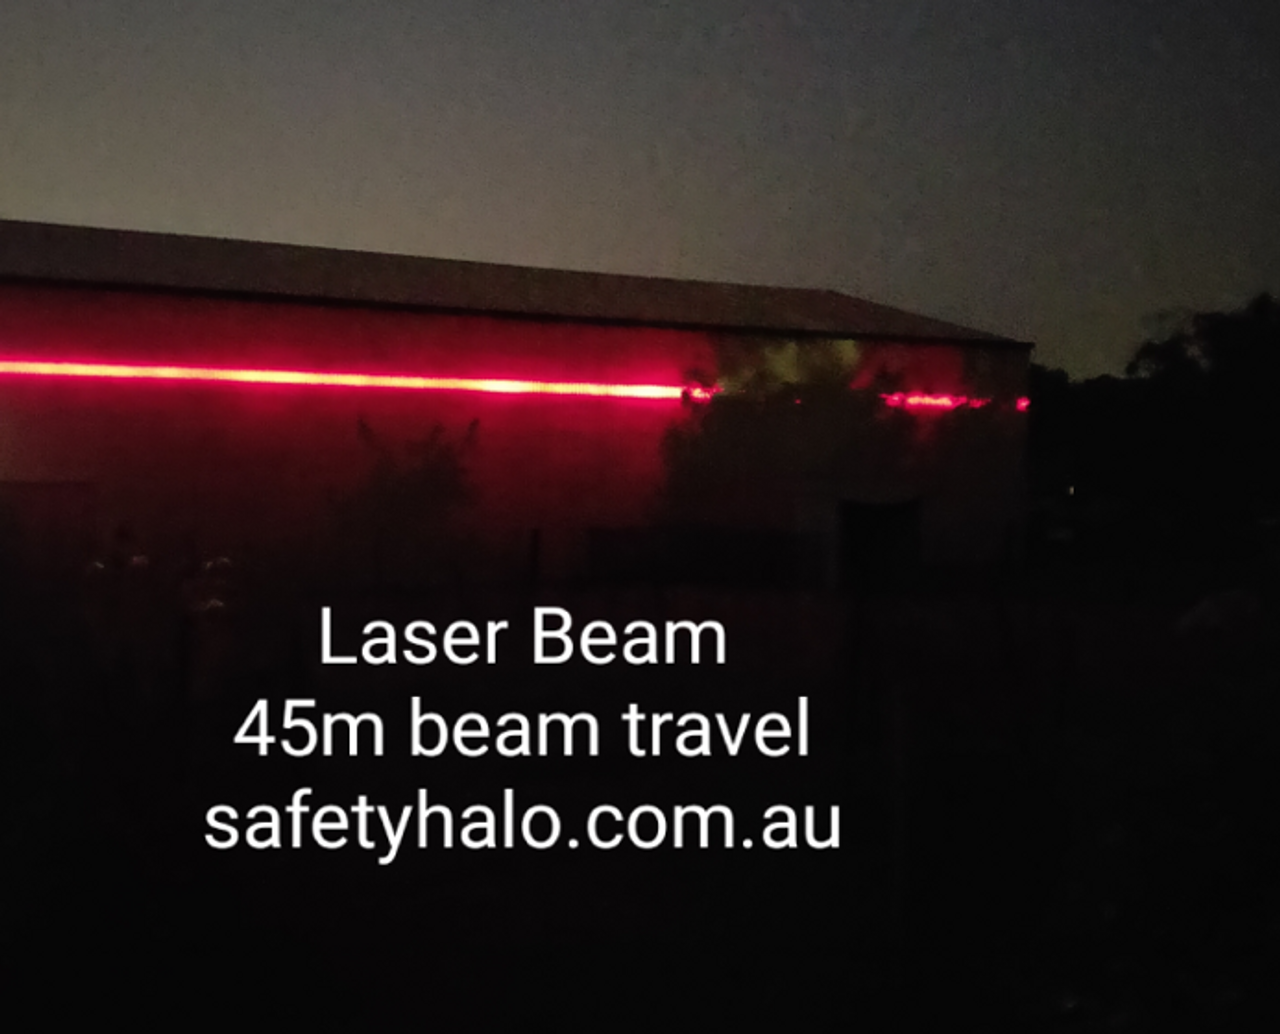 7. Laser Safety Halo Red Line Boundary Beam. Workplace Safety Exclusion Zone Around Heavy Machinery. Mining Machines Exclusion Zone. Warehouse Exclusion Zones. Transport Vehicle Loading Bay Exclusion Zones. Large Forklifts Exclusion Zone Kit